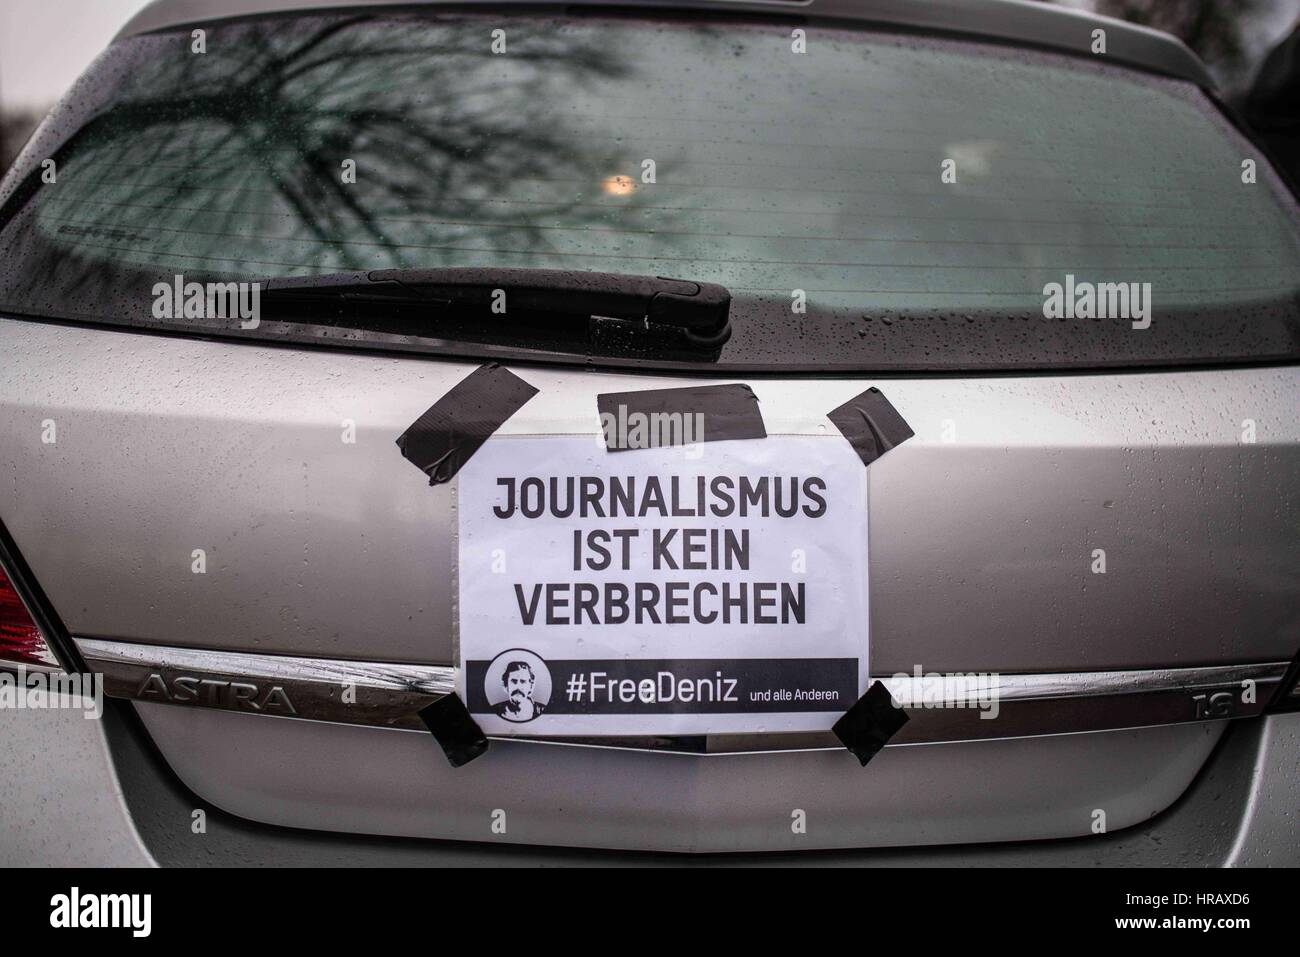 February 28, 2017 - Approximately 35-40 in 30 cars protested in a motorcade from Munich's Bavariapark, eventually Stock Photo